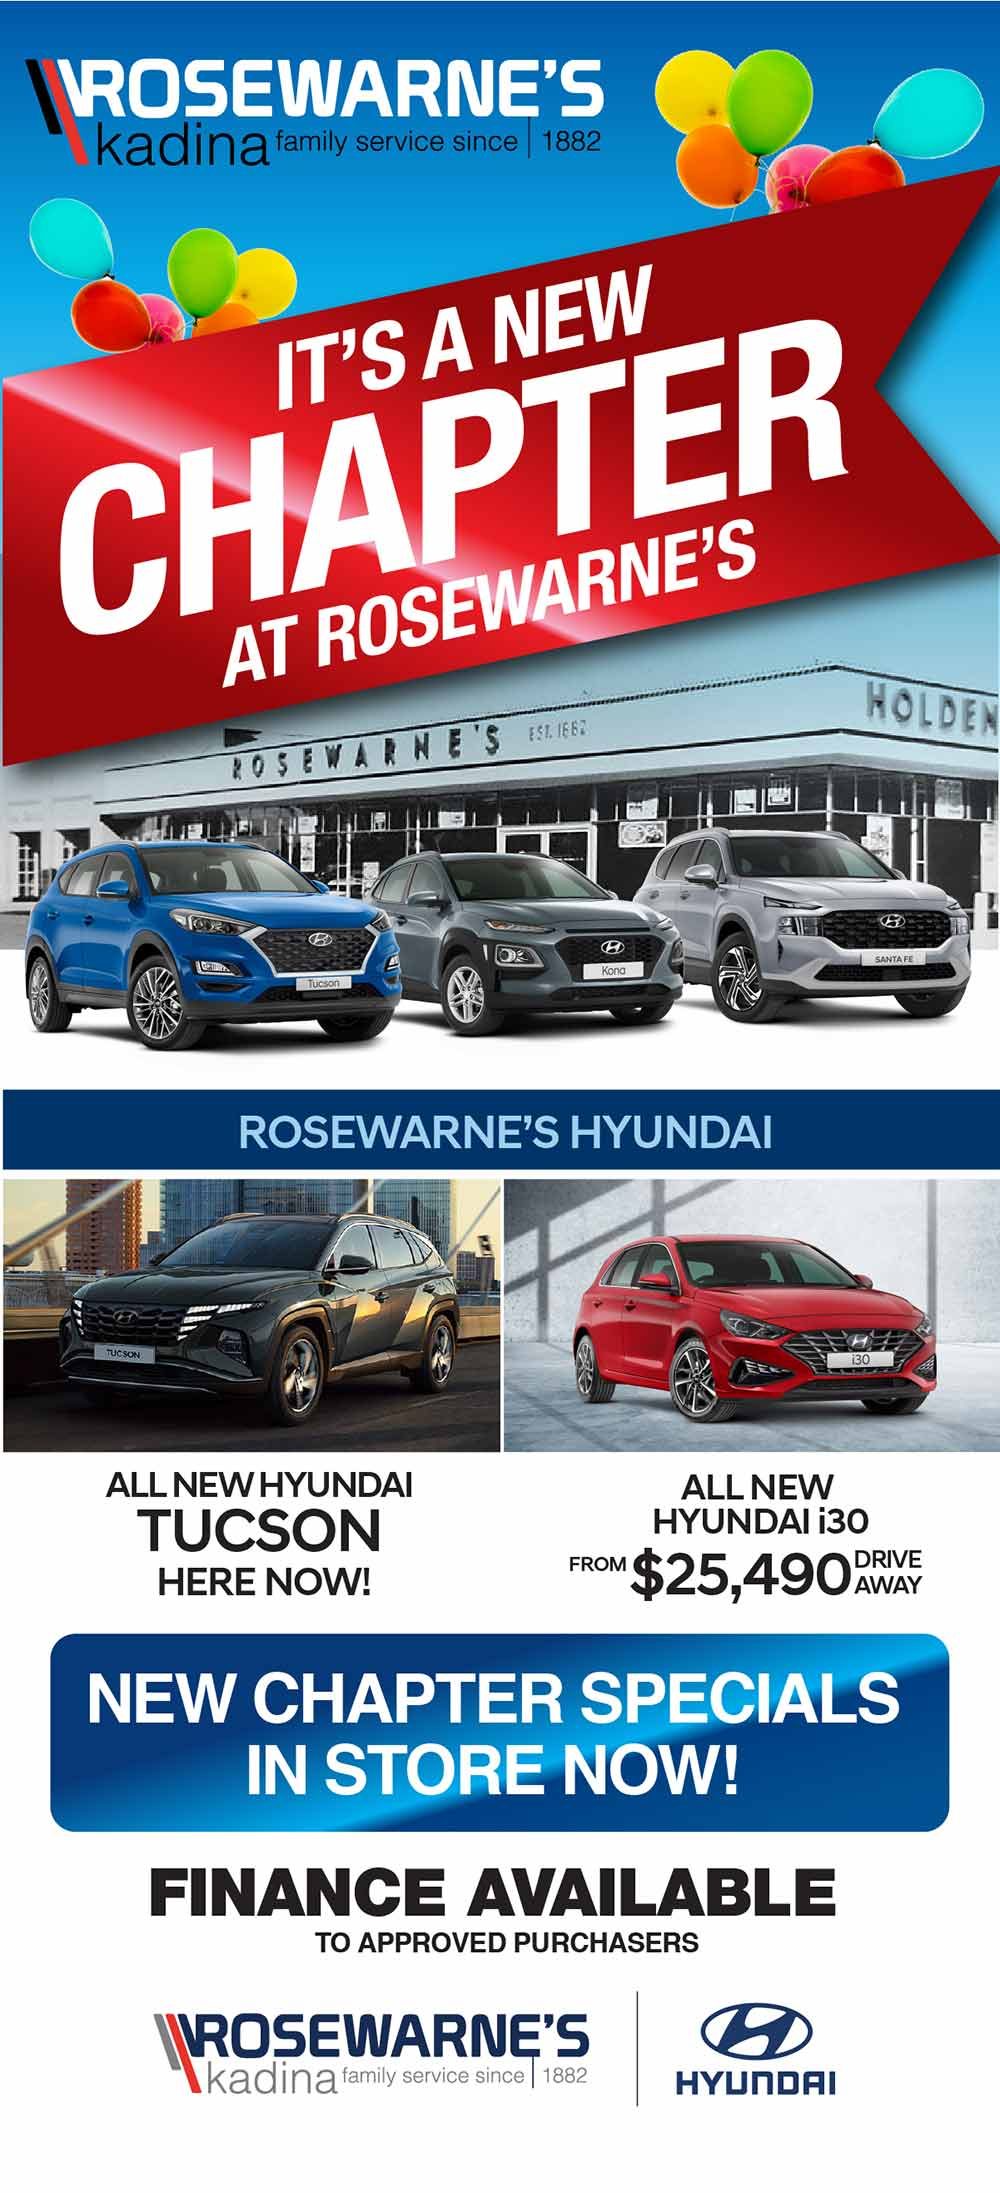 Rosewarne's Hyundai | It's A New Chapter At Rosewarne's - Special